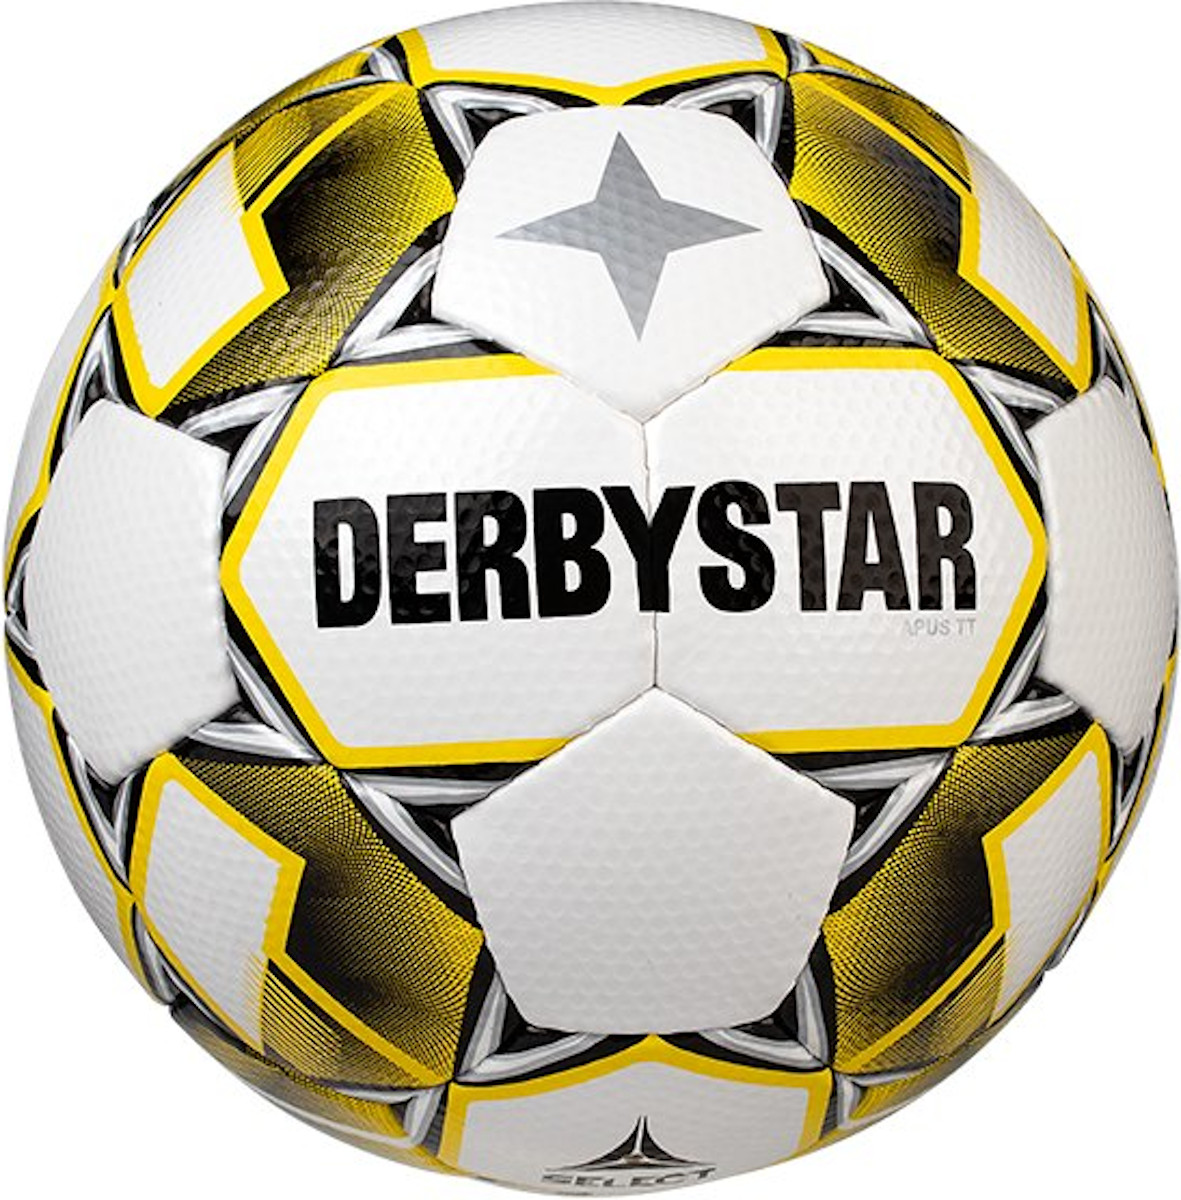 Derbystar Apus TT v20 Training Ball Labda